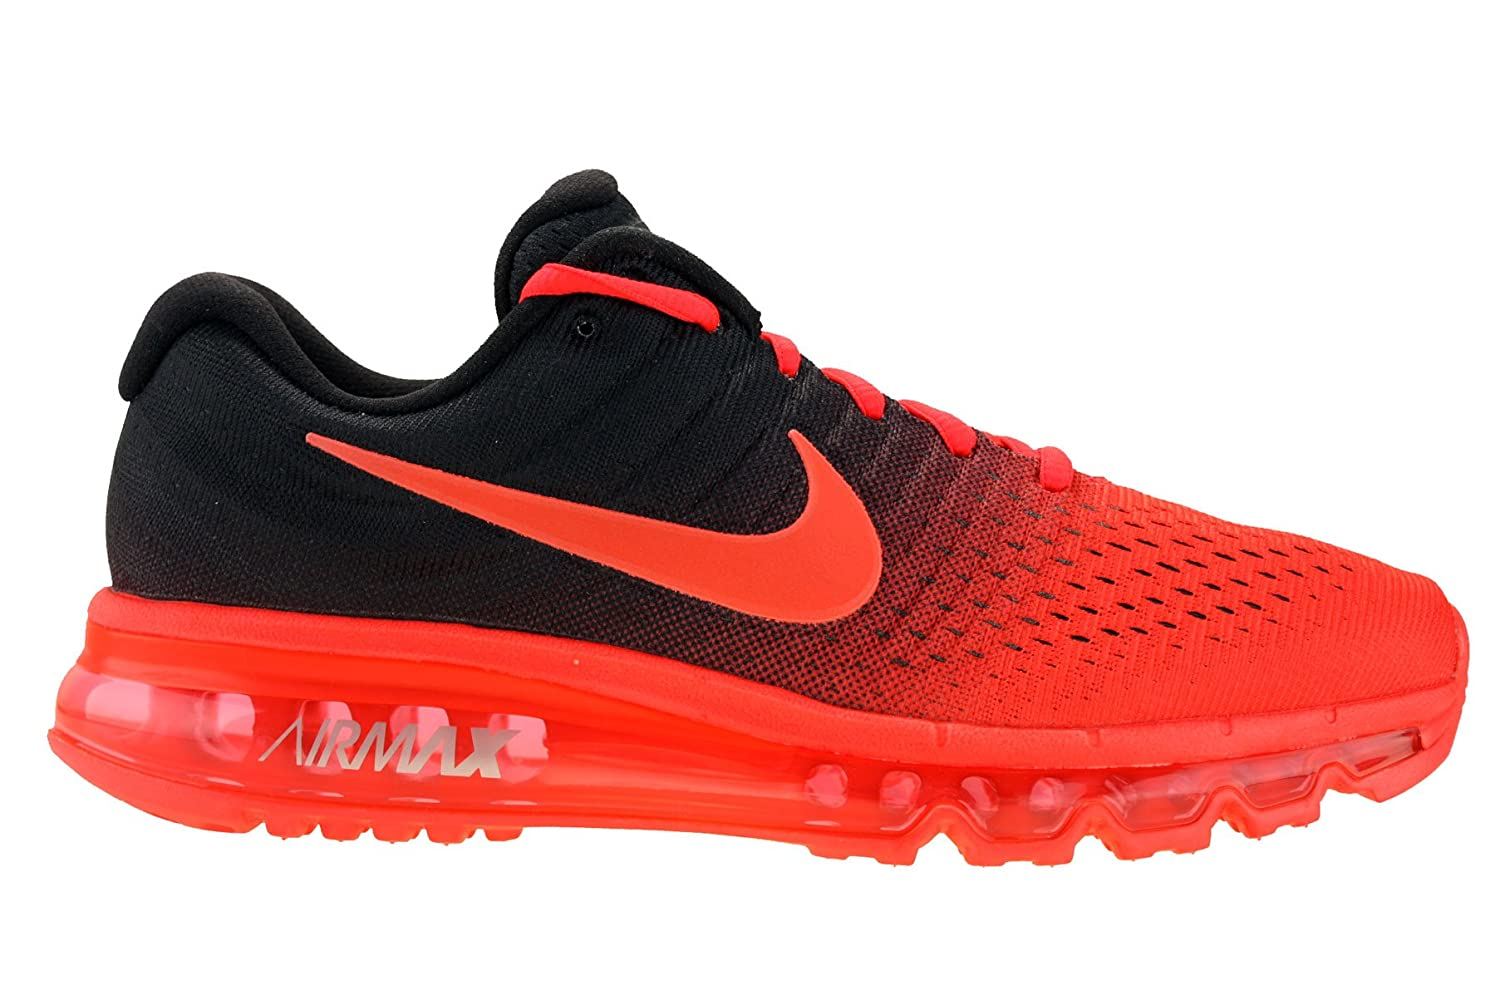 reputable site 56b58 848d4 Nike Mens Air Max 2017 Running Shoes Bright Crimson/Total Crimson/Black  849559-600 Size 12.5